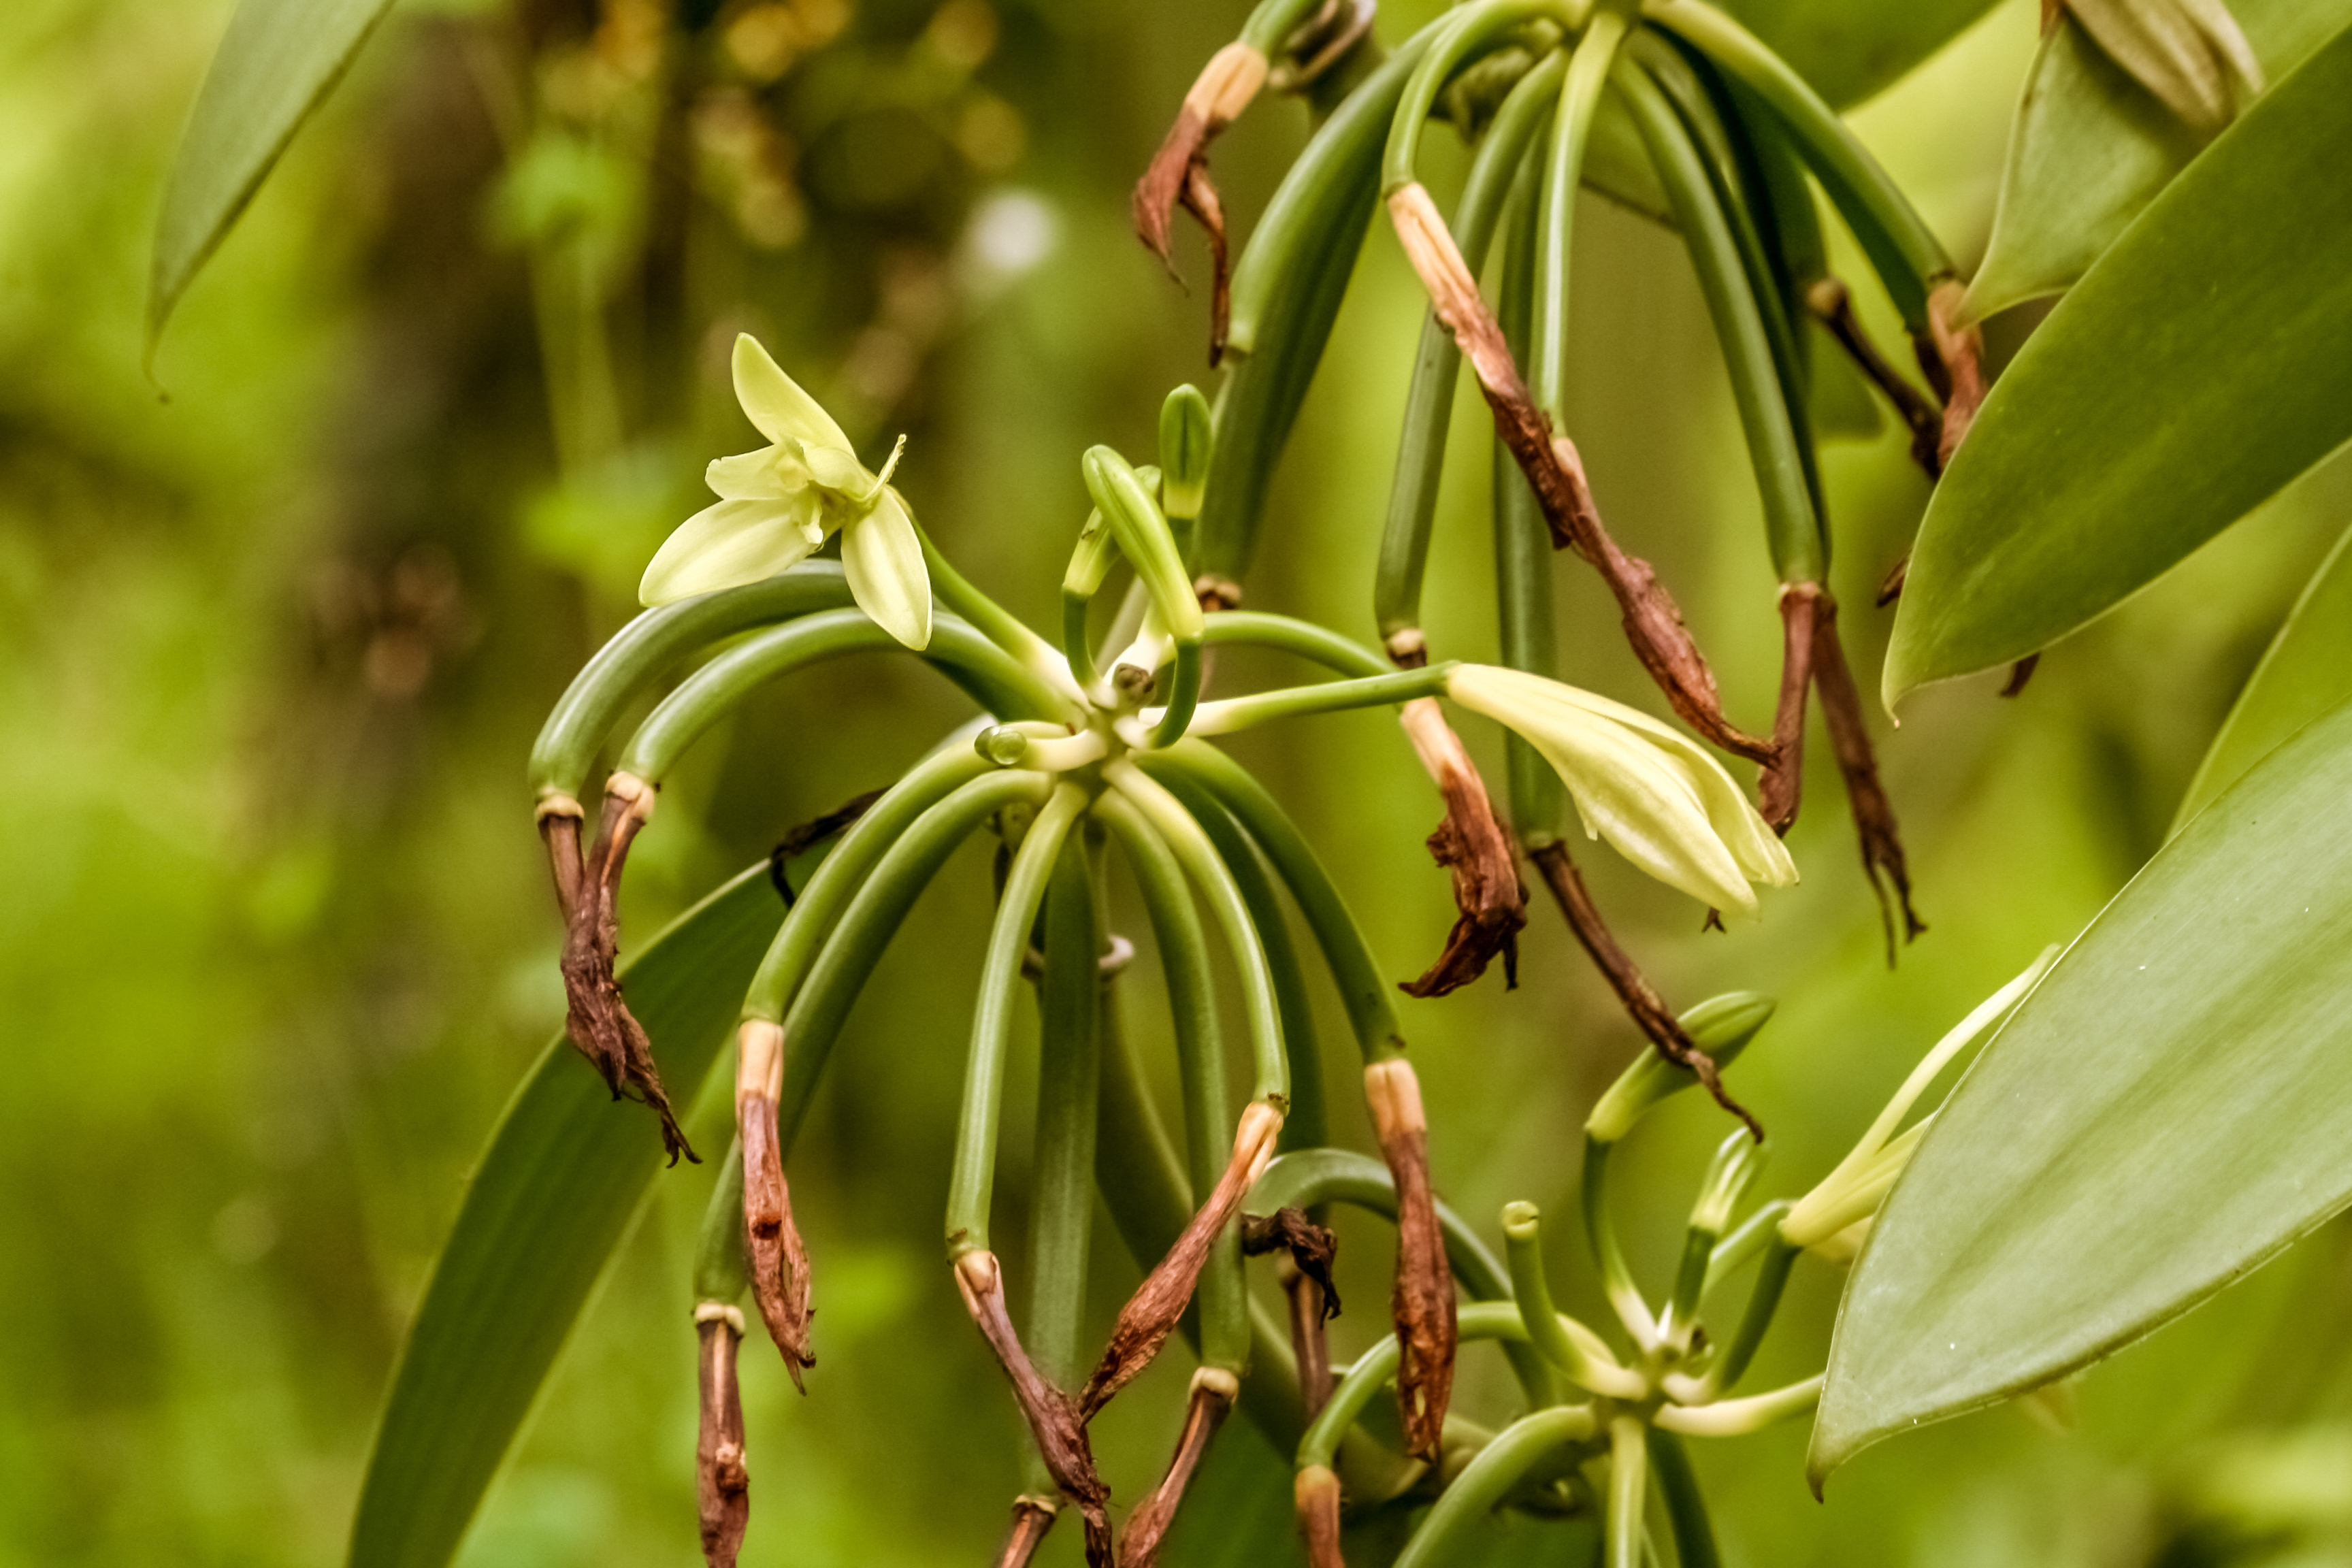 Vanilla sells for about $4000 a kg, whereas synthetic vanillin, one of the components of vanilla,...